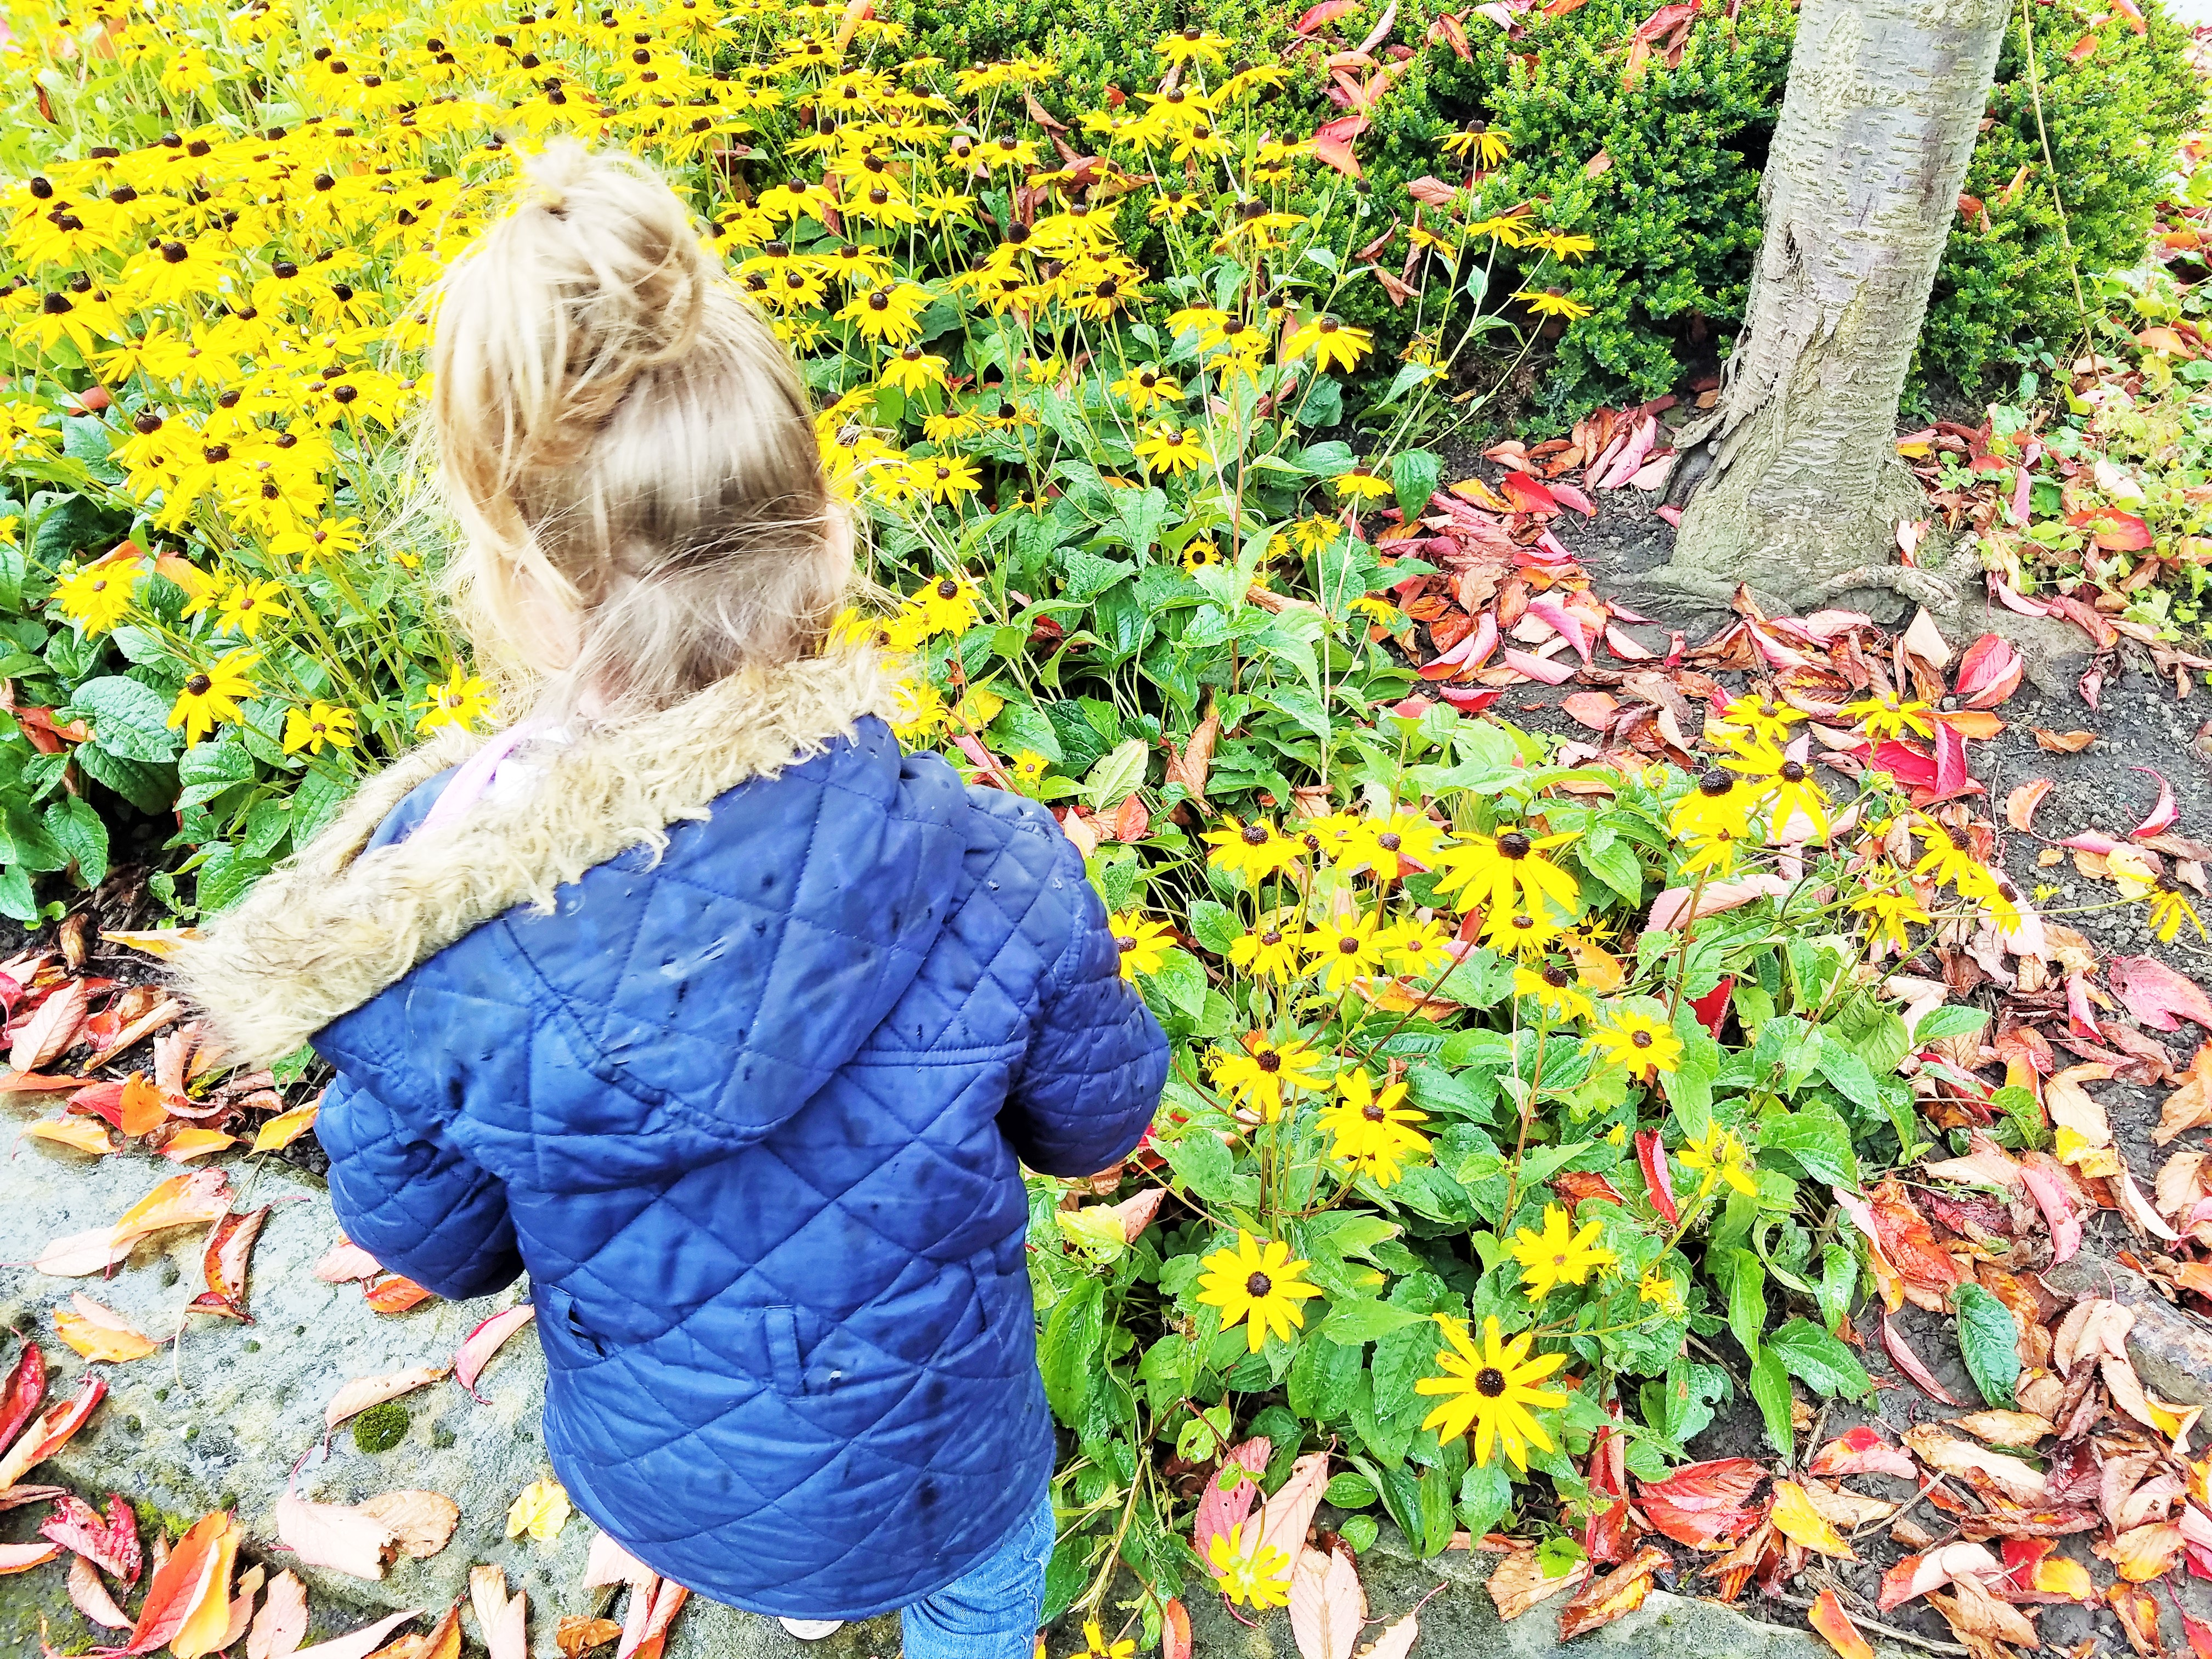 Sensitive child looking at field of yellow flowers